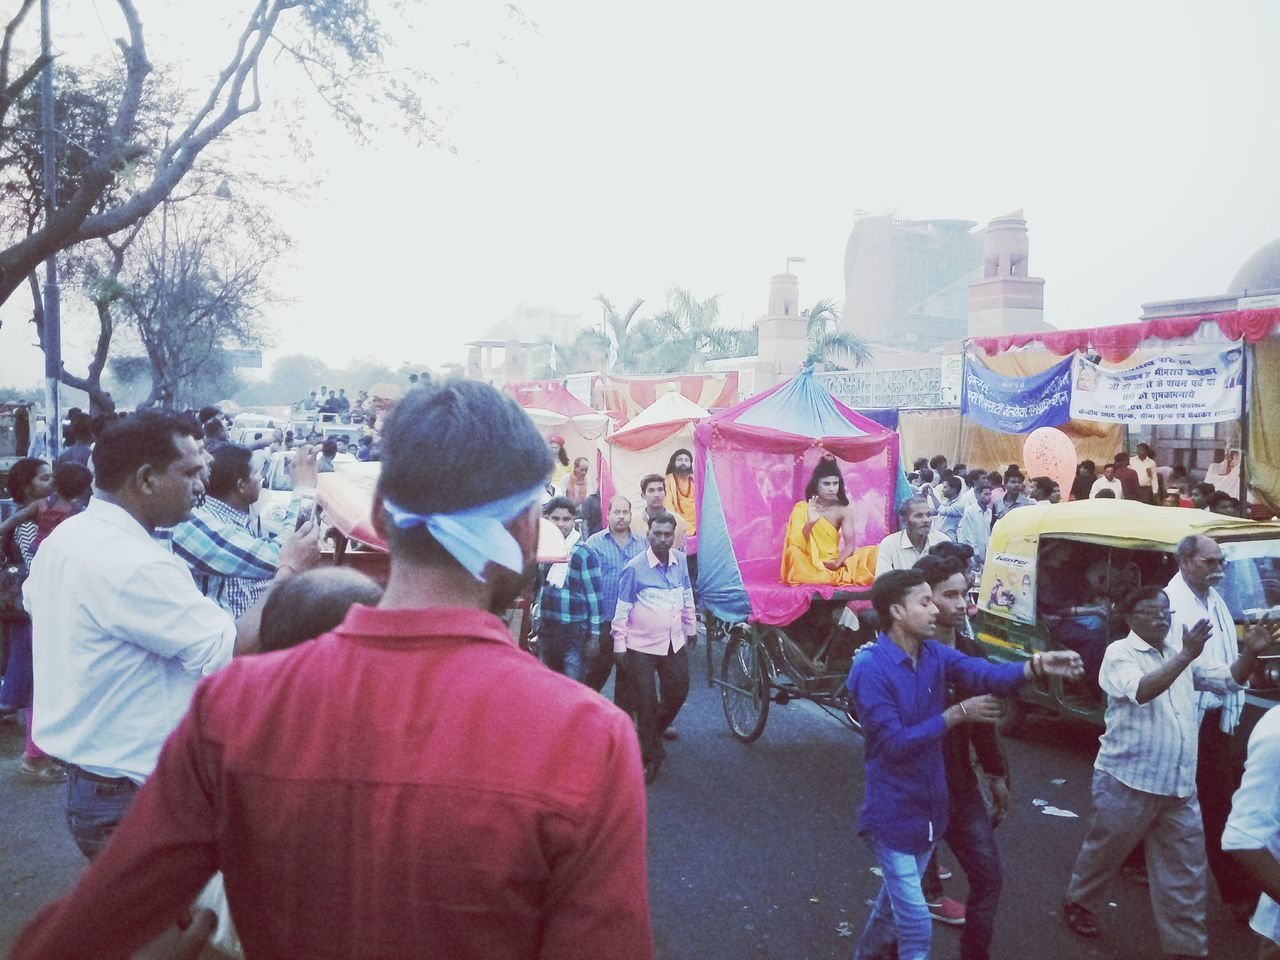 Ambedkar jayanti 126th (birth anniversary) Feeling Thankful Feeling Blessed Feeling Inspired Outdoors Large Group Of People Crowd Multi Colored Our God Who Gave Us All Human Rights